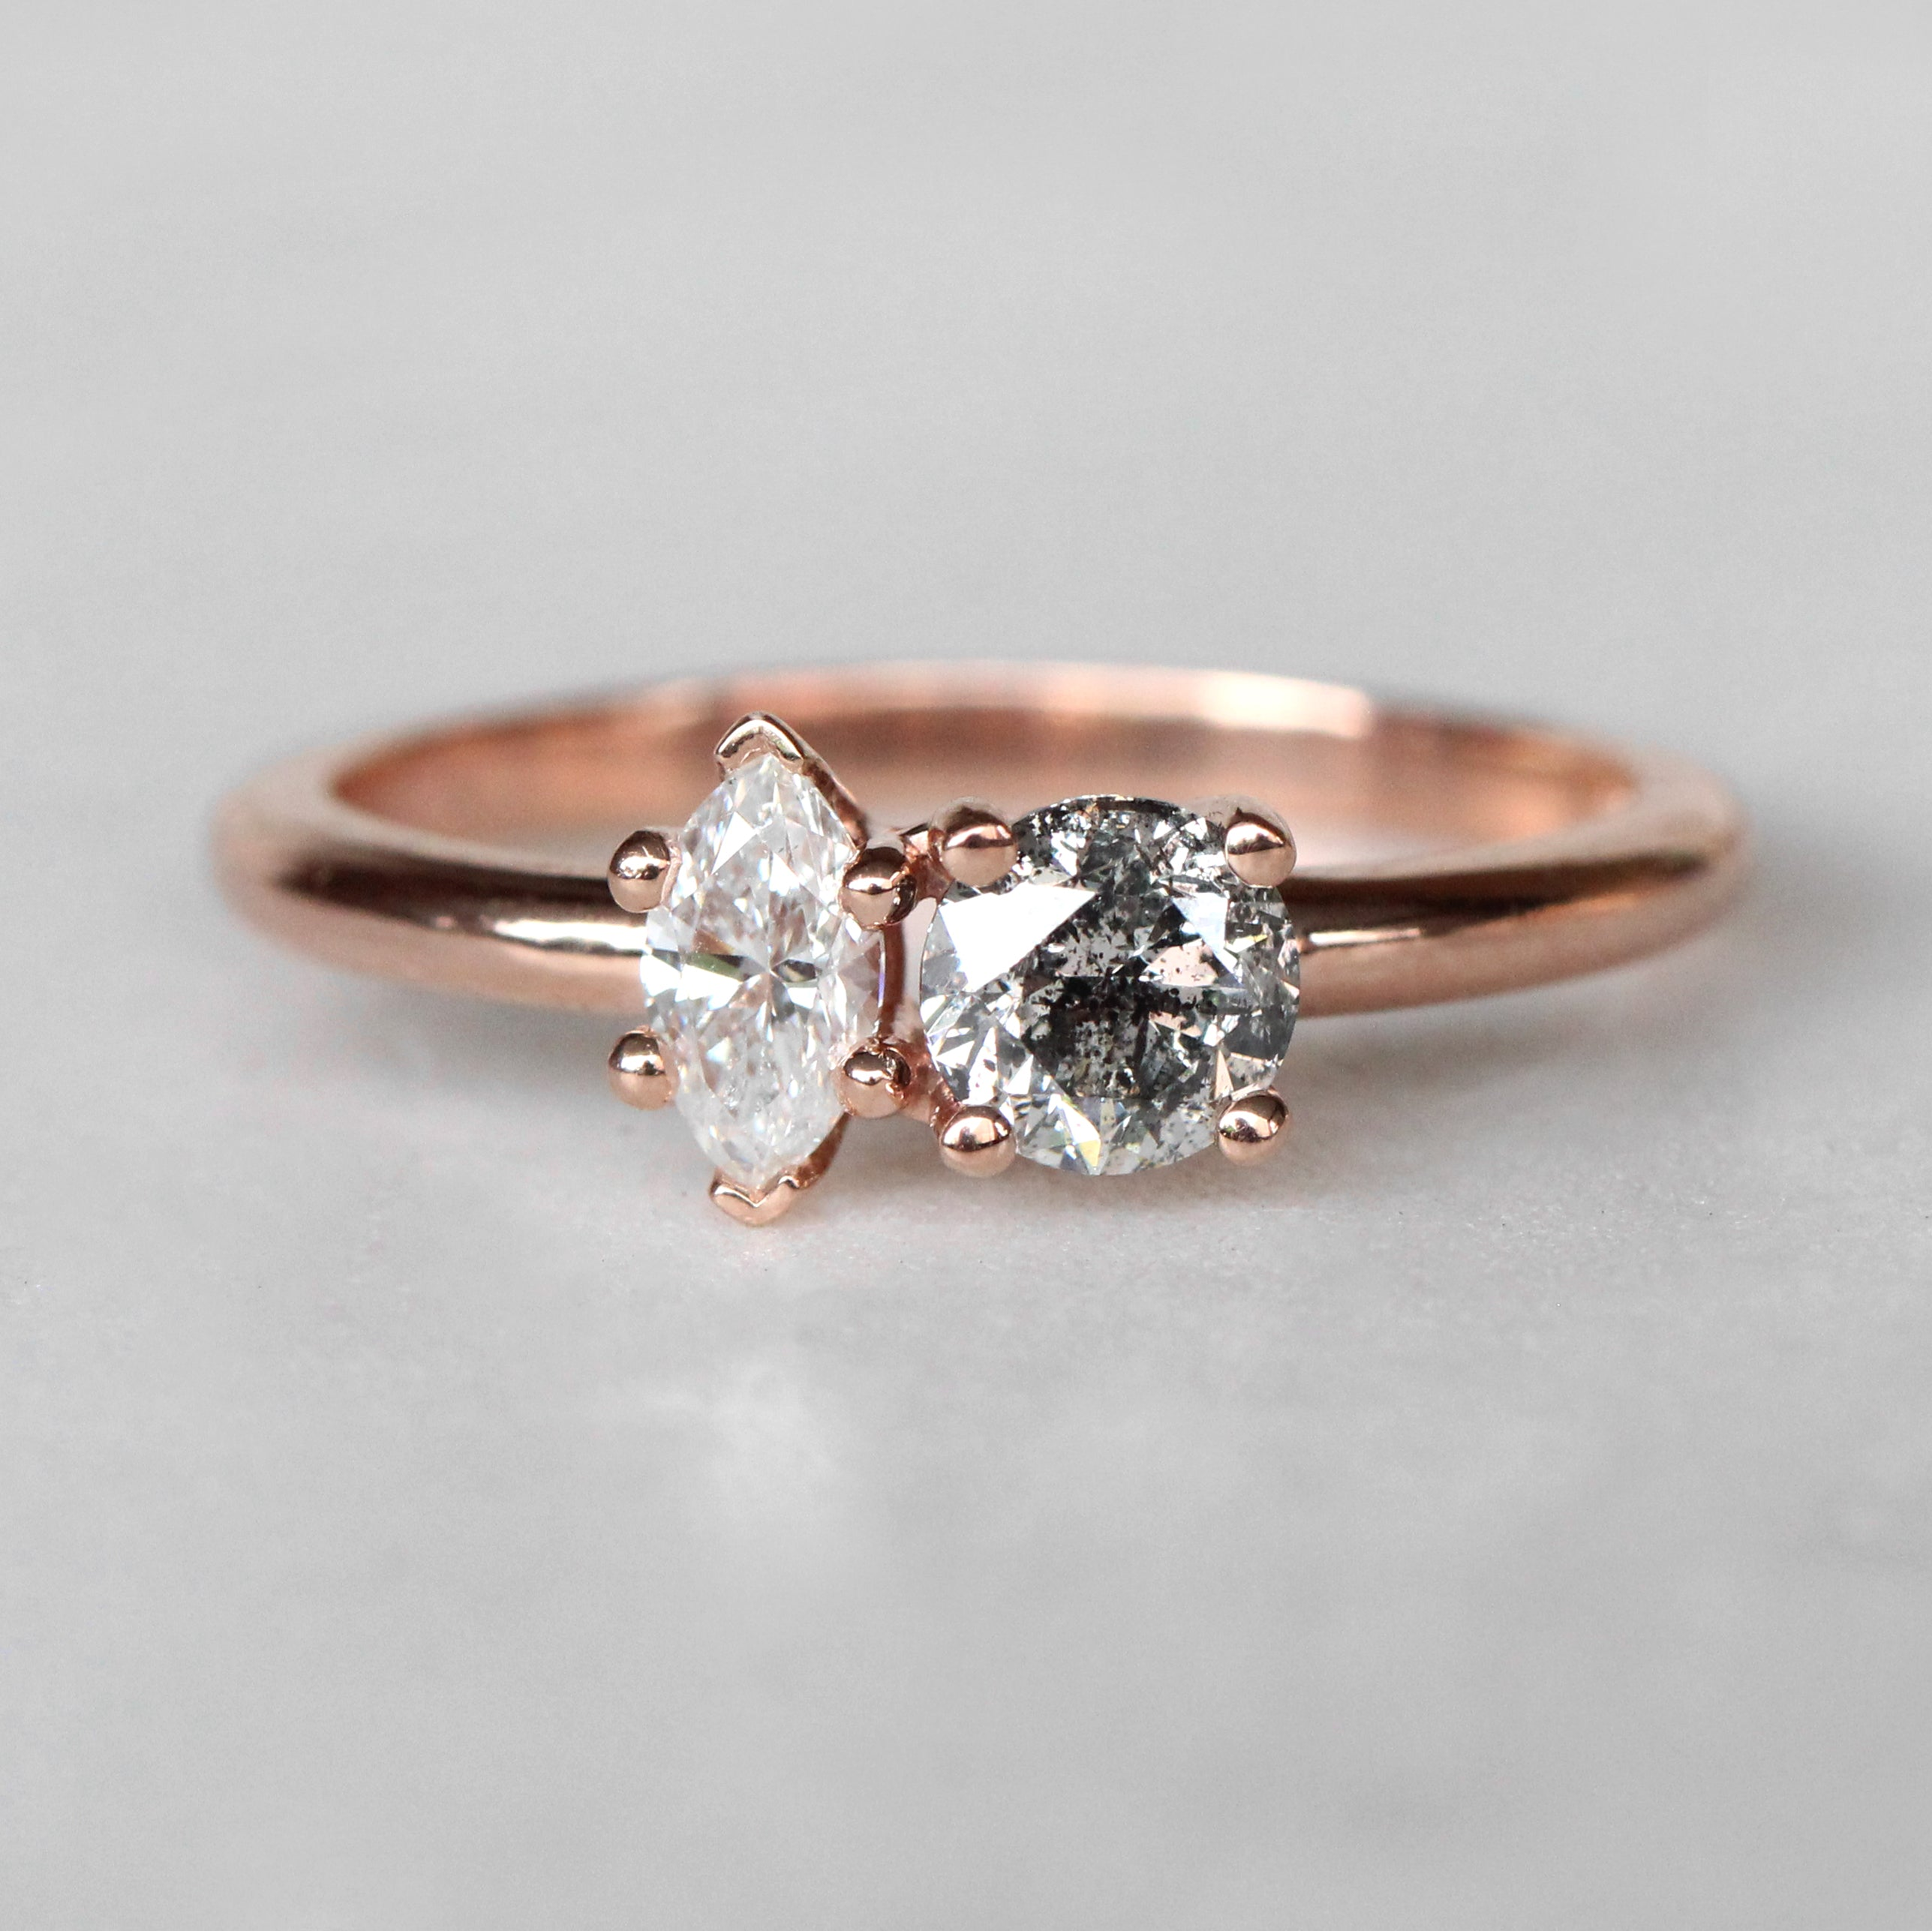 Maeve Ring with a Clear Marquise Diamond and Celestial Round Diamond in 10k Rose Gold - Ready to Size and Ship - Midwinter Co. Alternative Bridal Rings and Modern Fine Jewelry